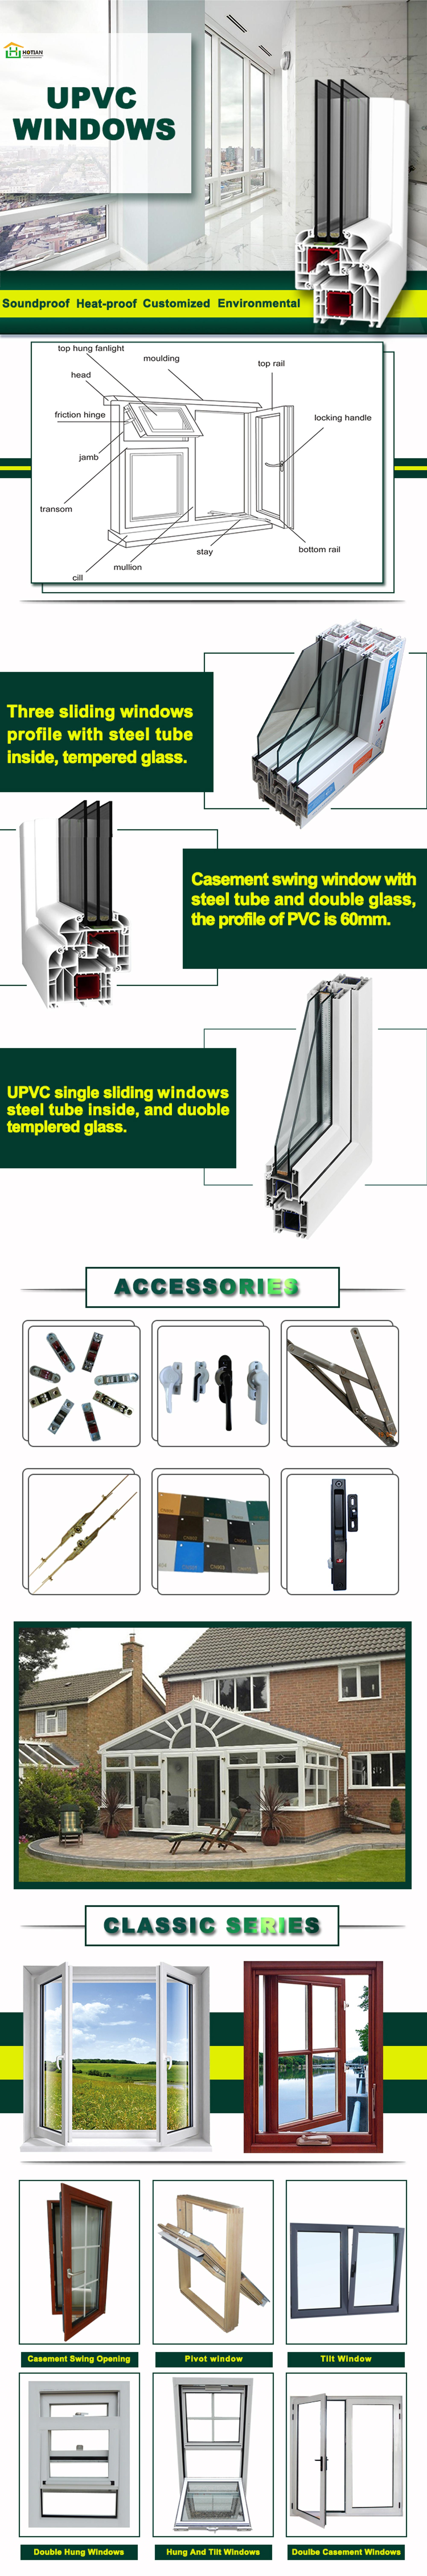 China top Manufacture Double Swing PVC/UPVC Profile Casement Window and Door